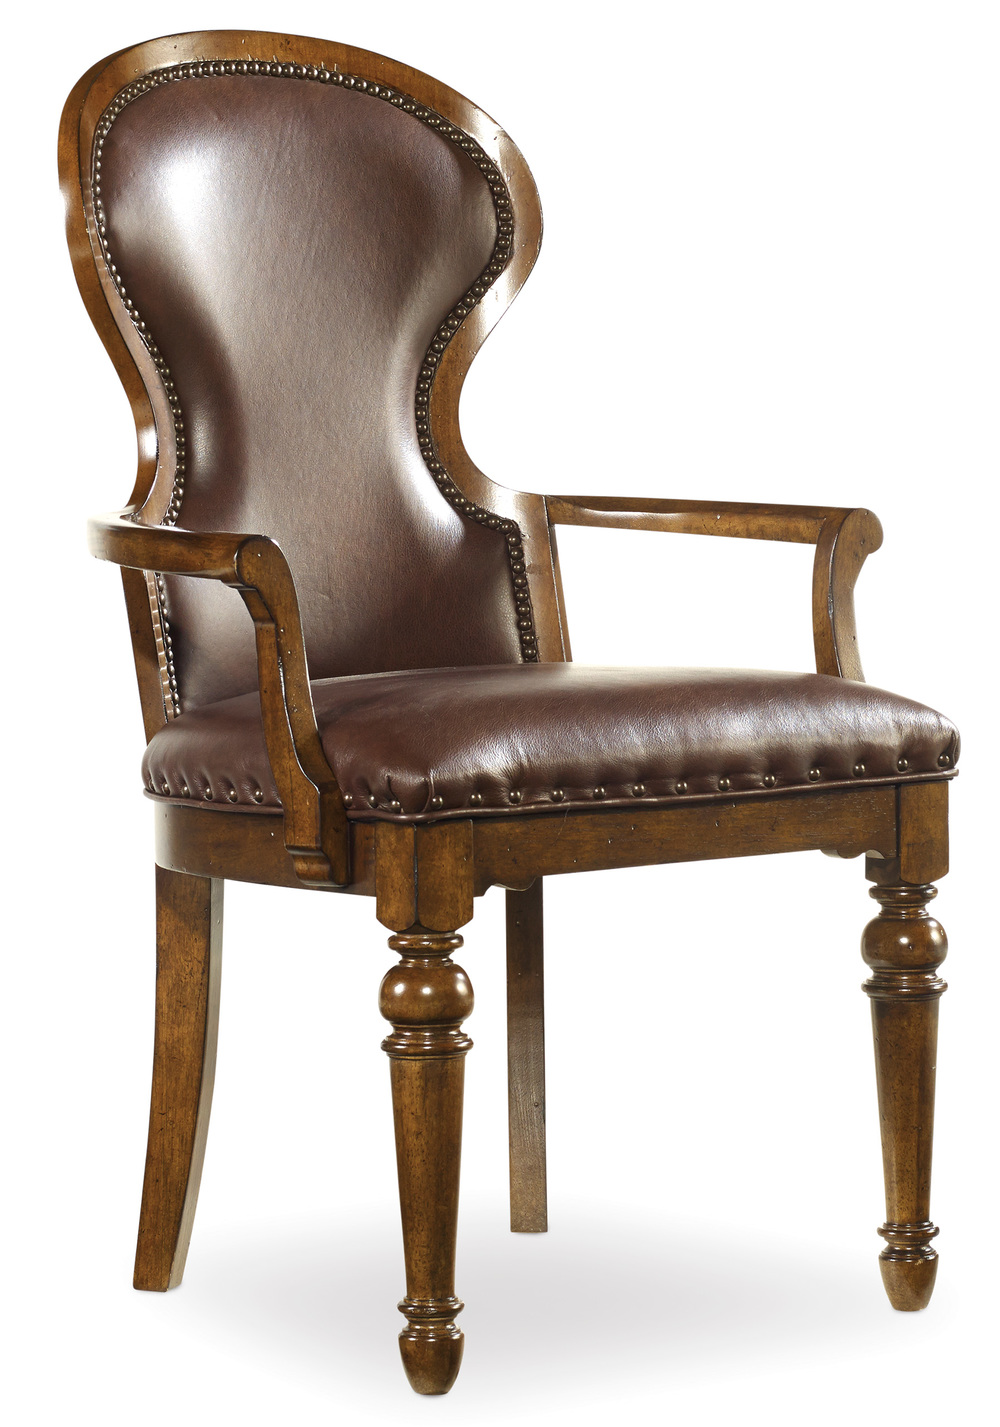 Hooker Furniture - Tynecastle Upholstered Arm Chair